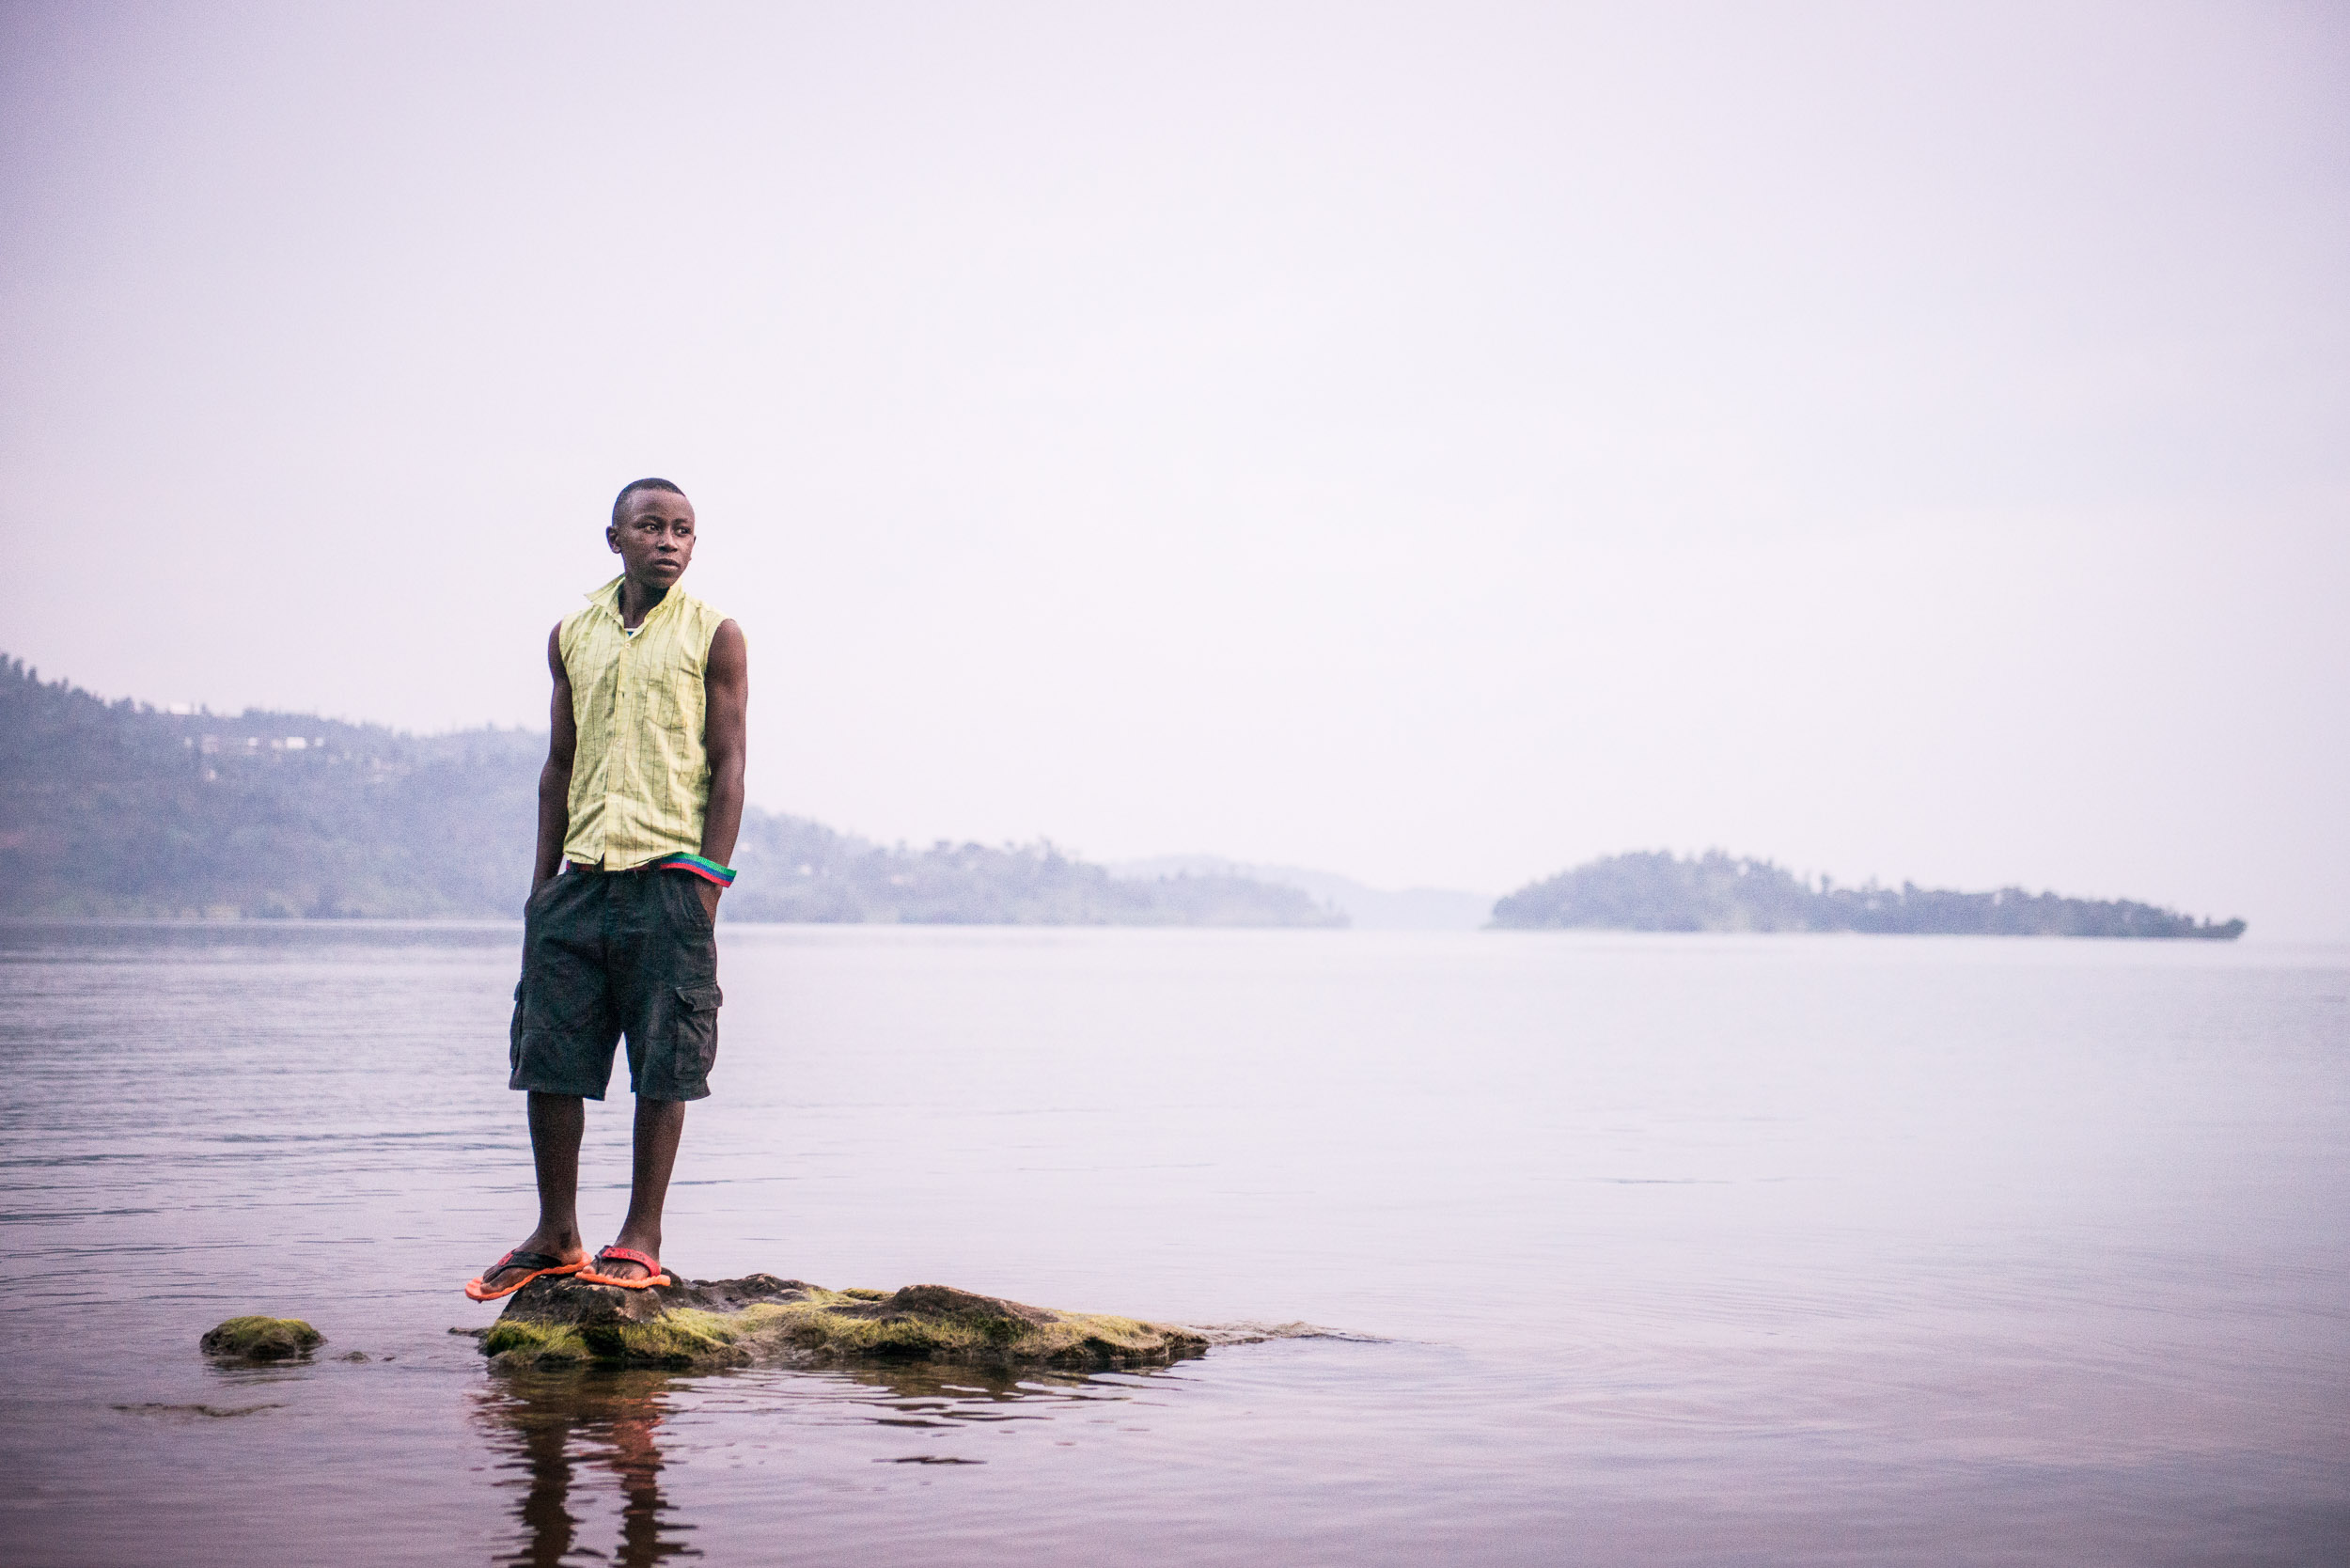 Rwanda boy on lake - Travel - Photo credit Nicola Bailey.jpg